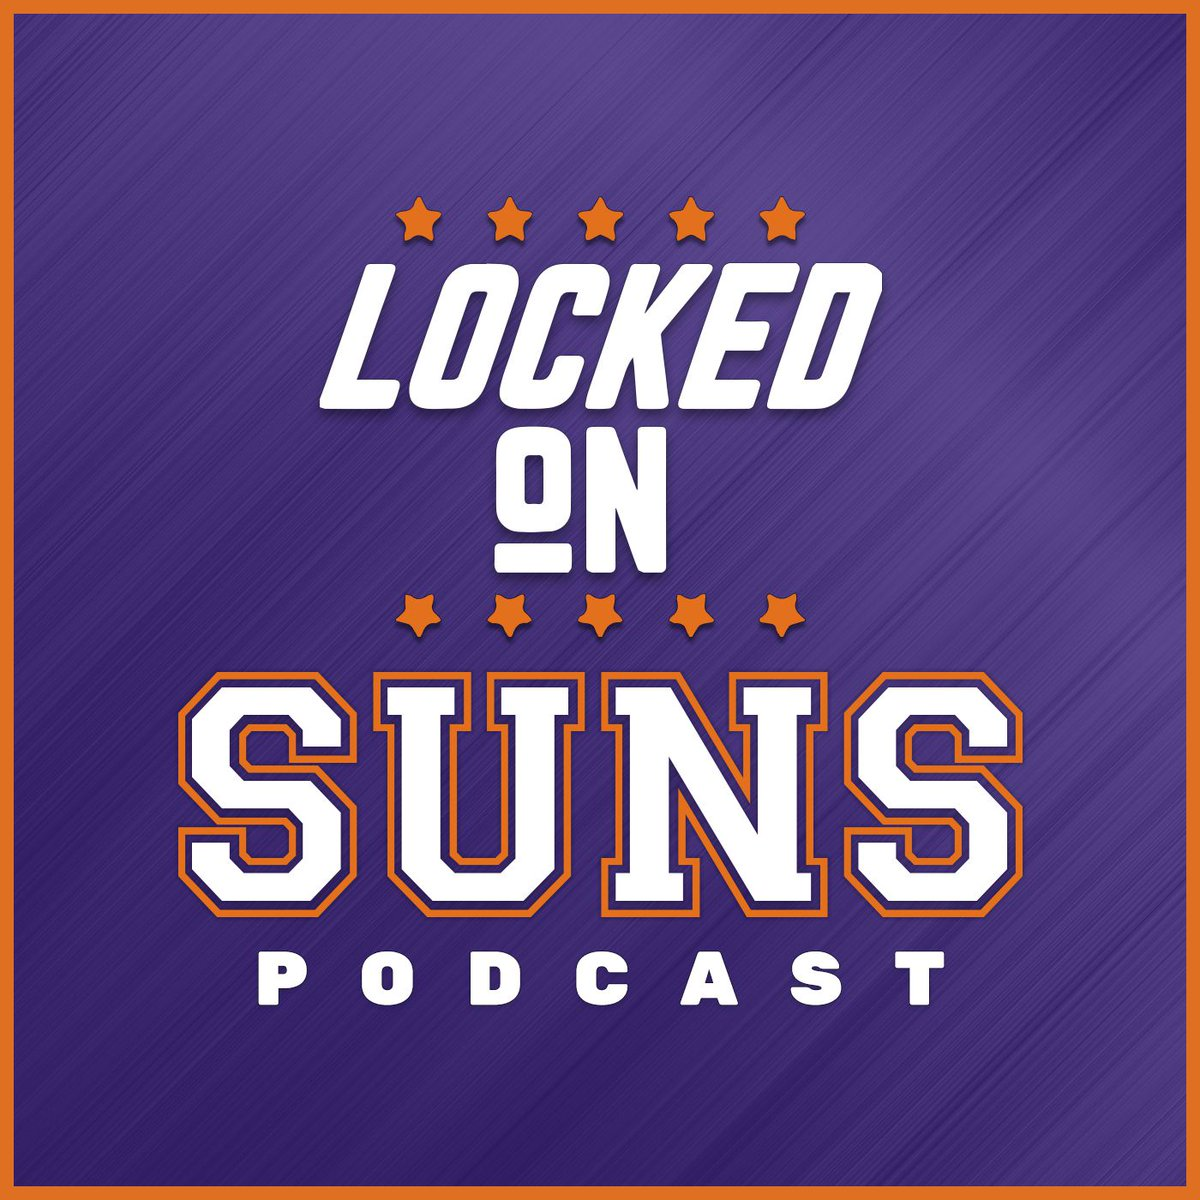 .@LockedOnPHXSuns Wednesday: Coaching buzz, free agency thoughts and playoff inklings with @seandeveney of Sporting News https://www.brightsideofthesun.com/2019/4/17/18412791/phoenix-suns-podcast-coaching-buzz-free-agency-playoffs-sean-deveney-sporting-news?utm_campaign=brightsideofthesun&utm_content=chorus&utm_medium=social&utm_source=twitter…